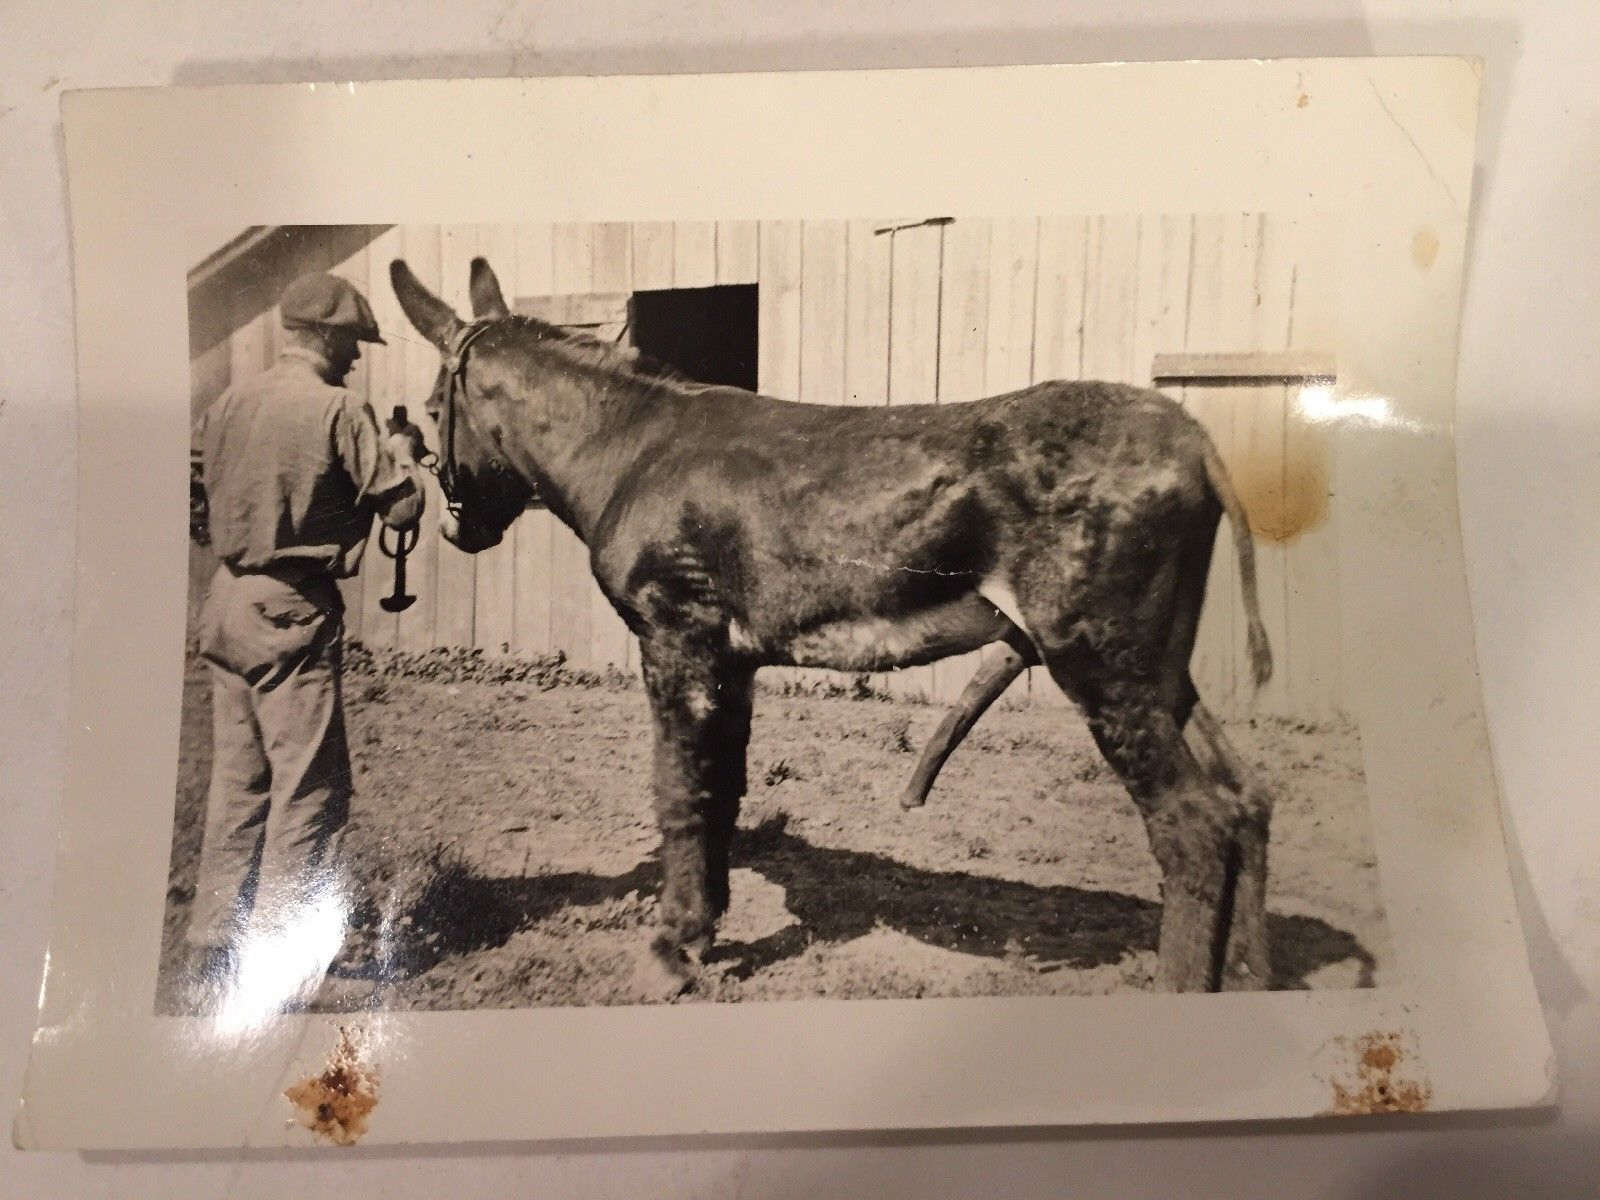 1930S Real Photo Stud Horse With A Very Long Penis Proudly Showing Off 375X275 -4680